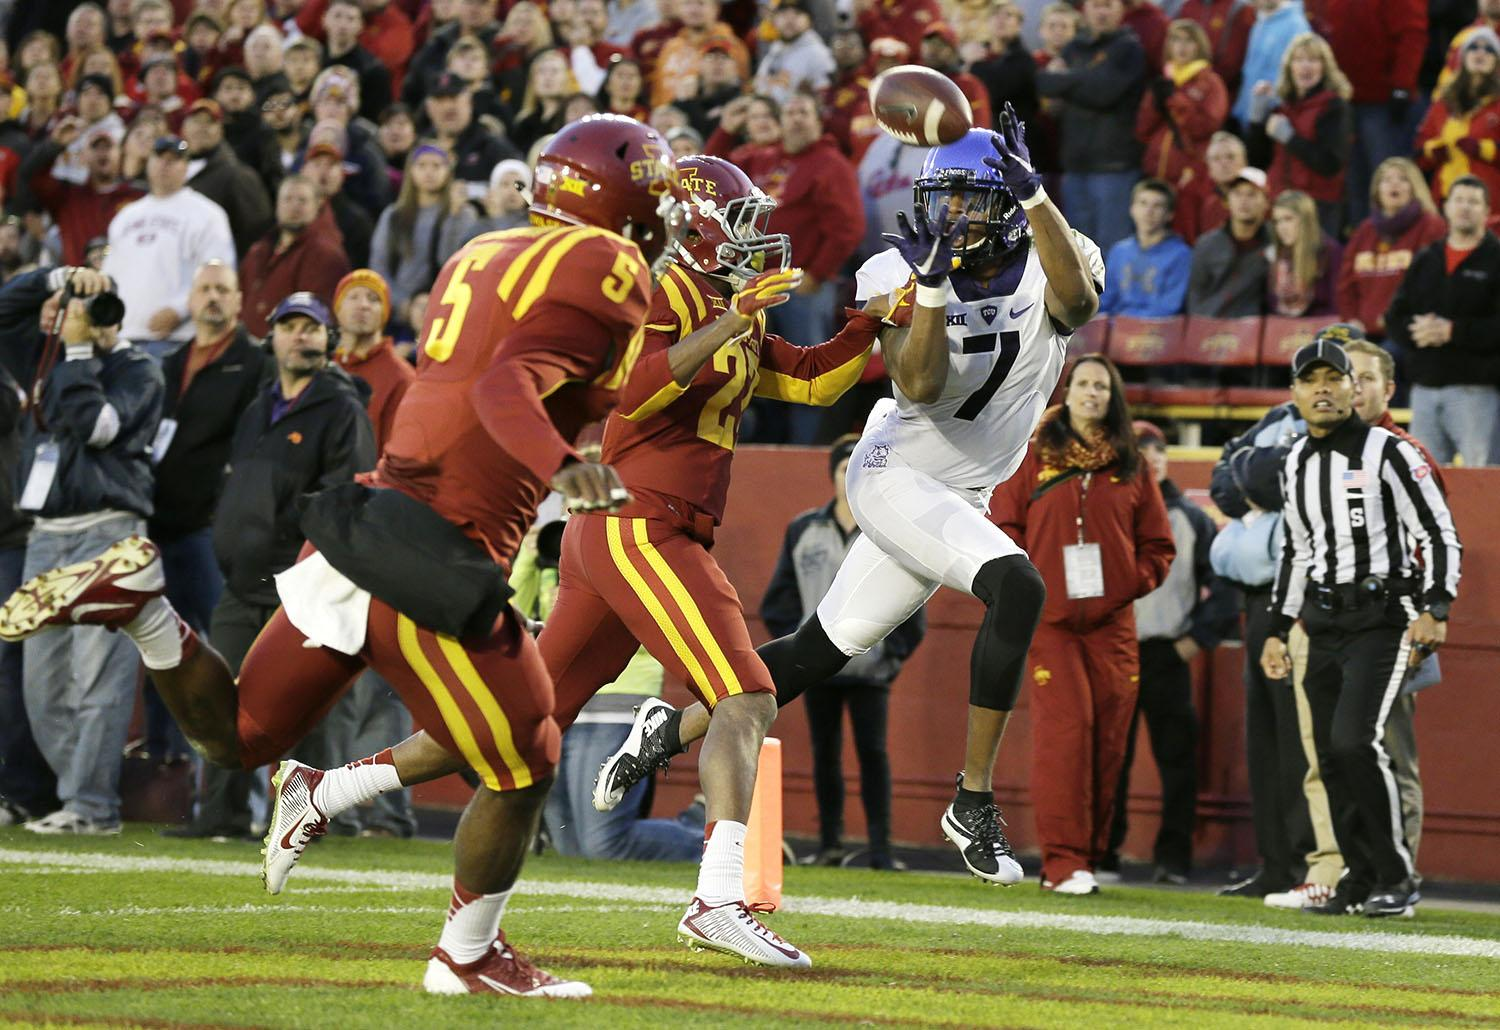 TCU wide receiver Kolby Listenbee (7) catches a touchdown pass in front of Iowa State defenders Kamari Cotton-Moya (5) and Kenneth Lynn, center, during the first half of an NCAA college football game, Saturday, Oct. 17, 2015, in Ames, Iowa. (AP Photo/Charlie Neibergall)